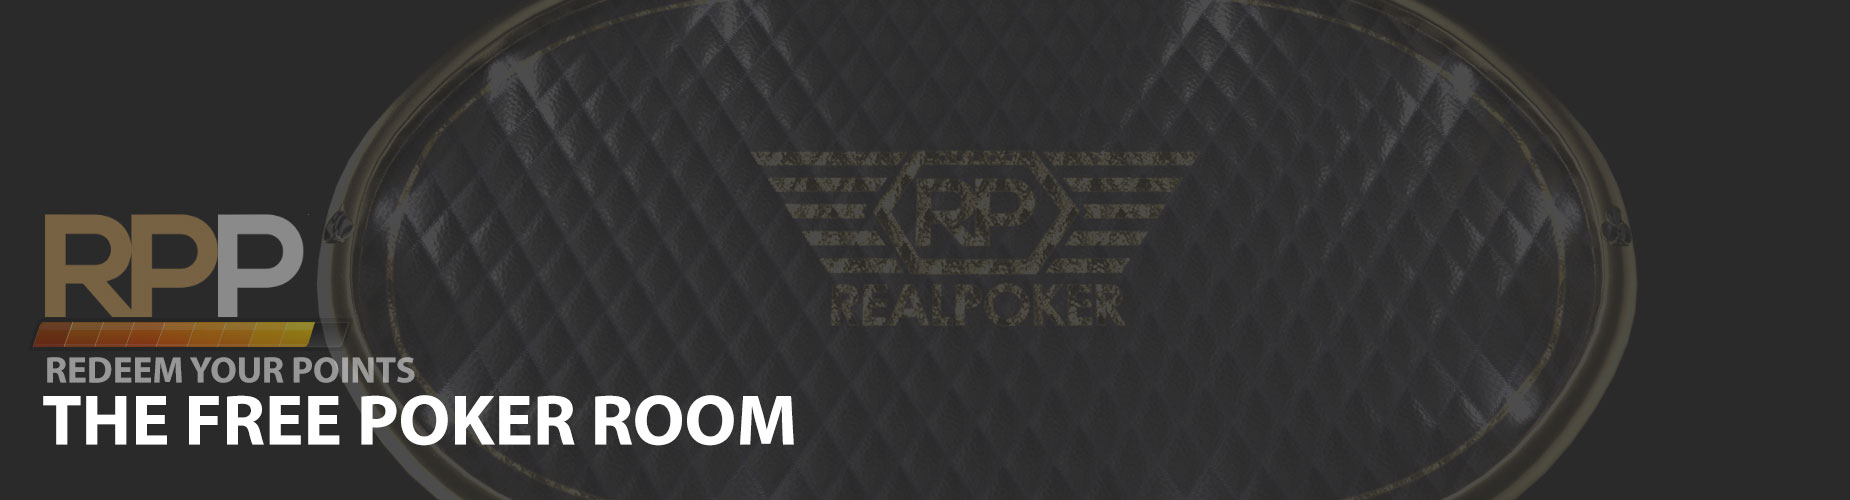 The Free Poker Room